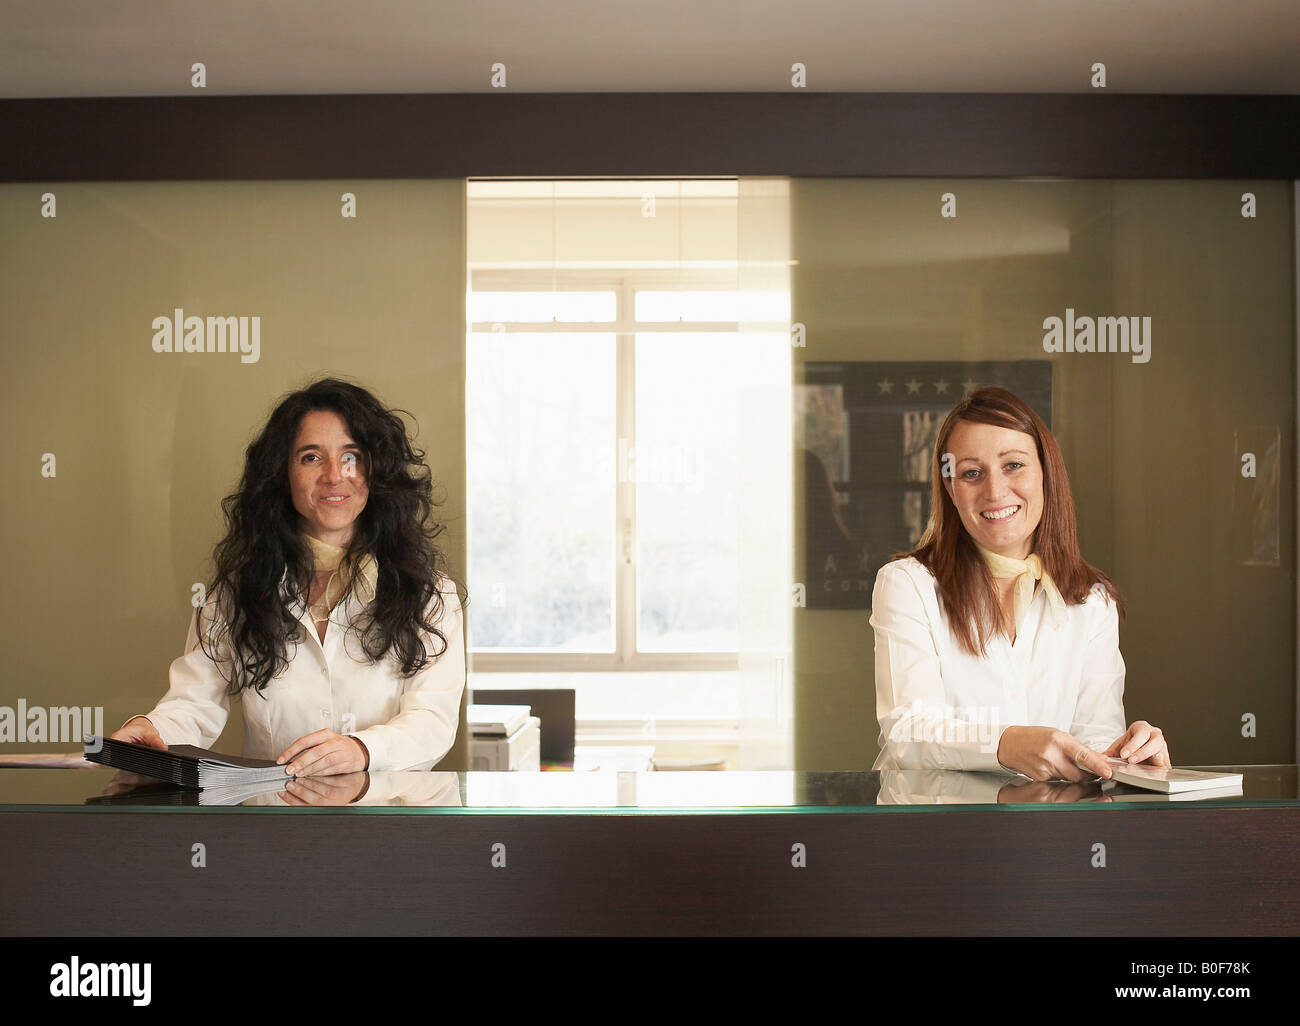 Two Receptionists behind hotel counter - Stock Image